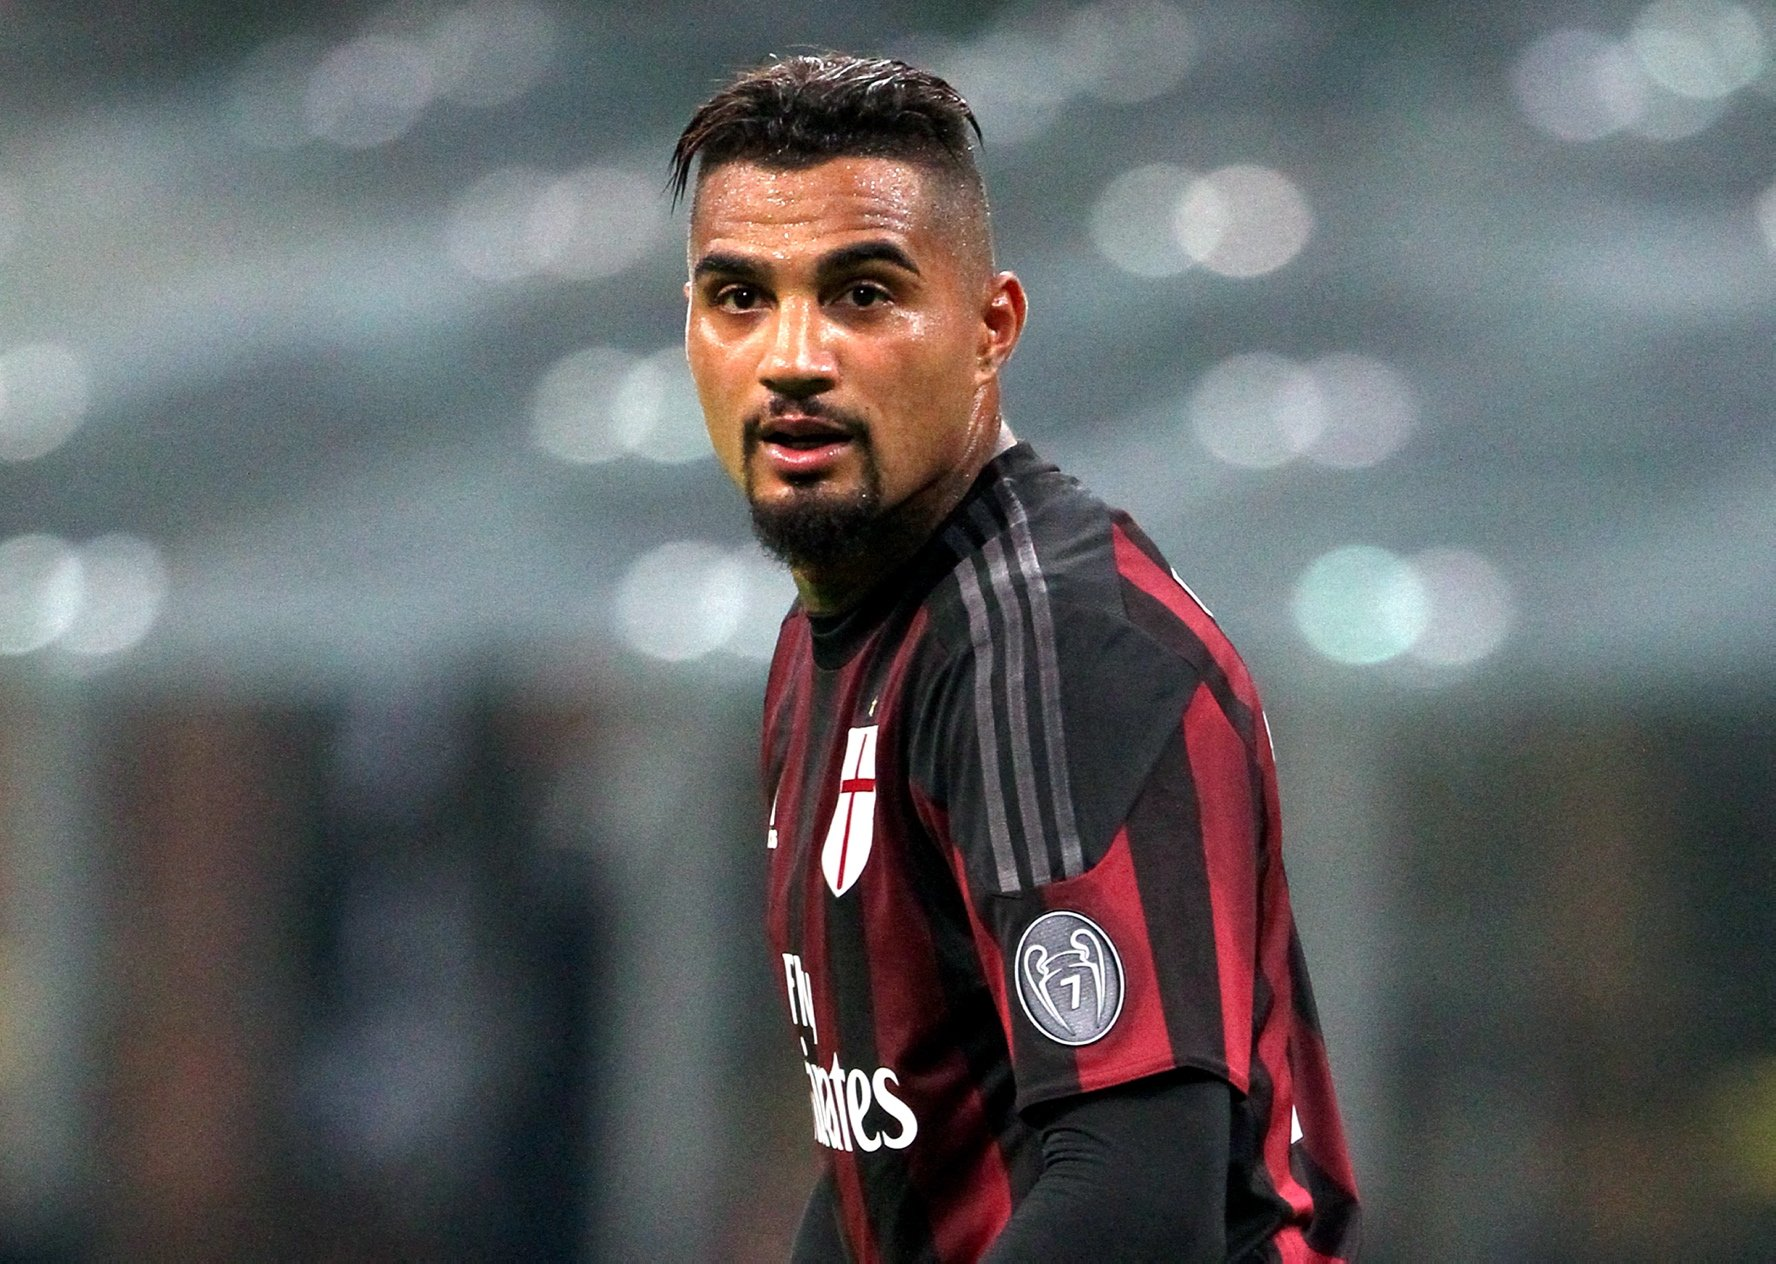 Spanish La Liga side Las Palmas table offer to sign Kevin-Prince Boateng